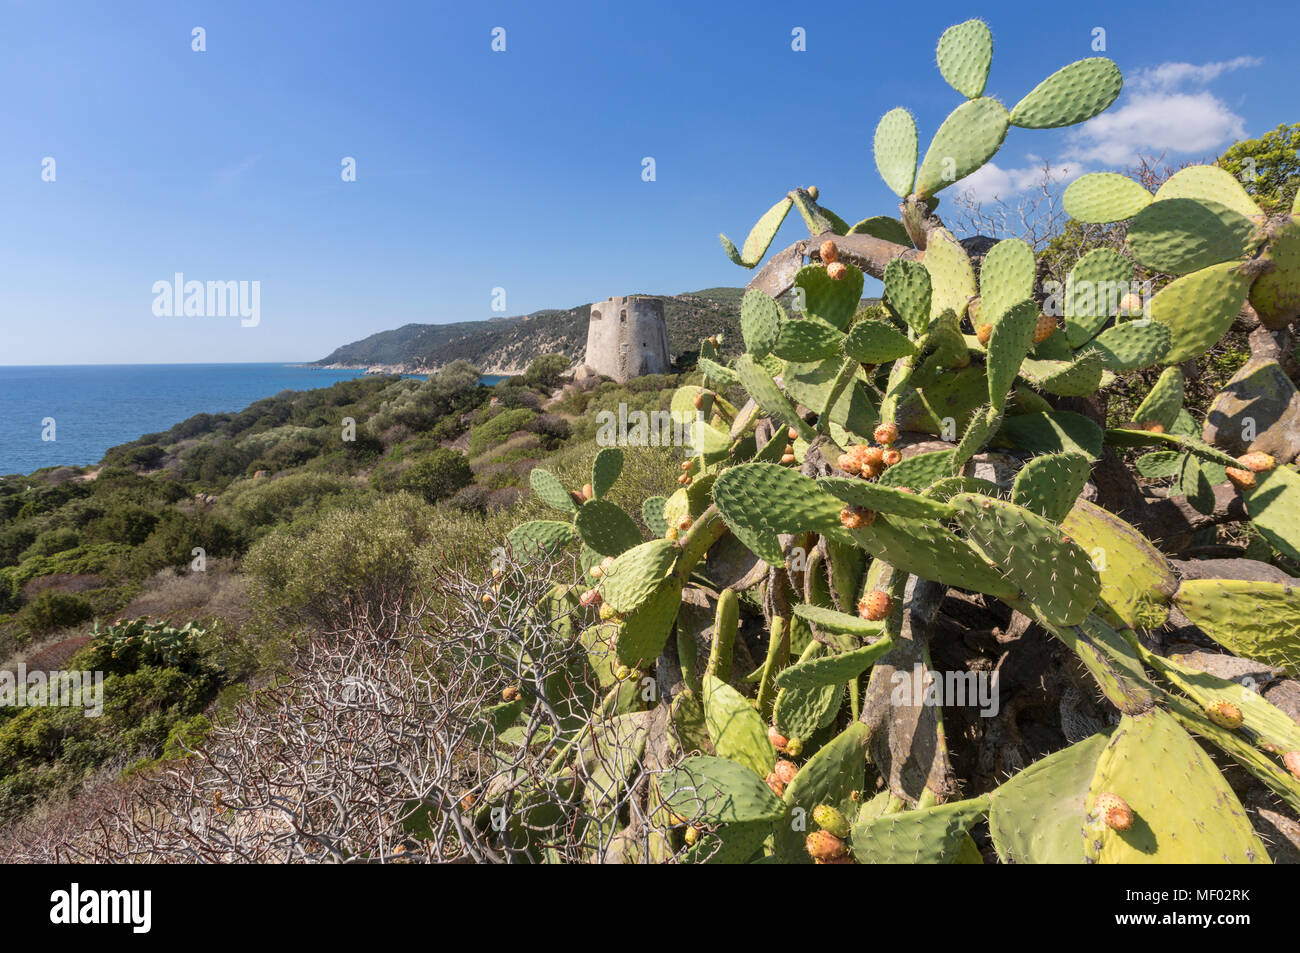 Prickly pears of the inland frame the tower overlooking the turquoise sea Cala Pira Castiadas Cagliari Sardinia Italy Europe - Stock Image